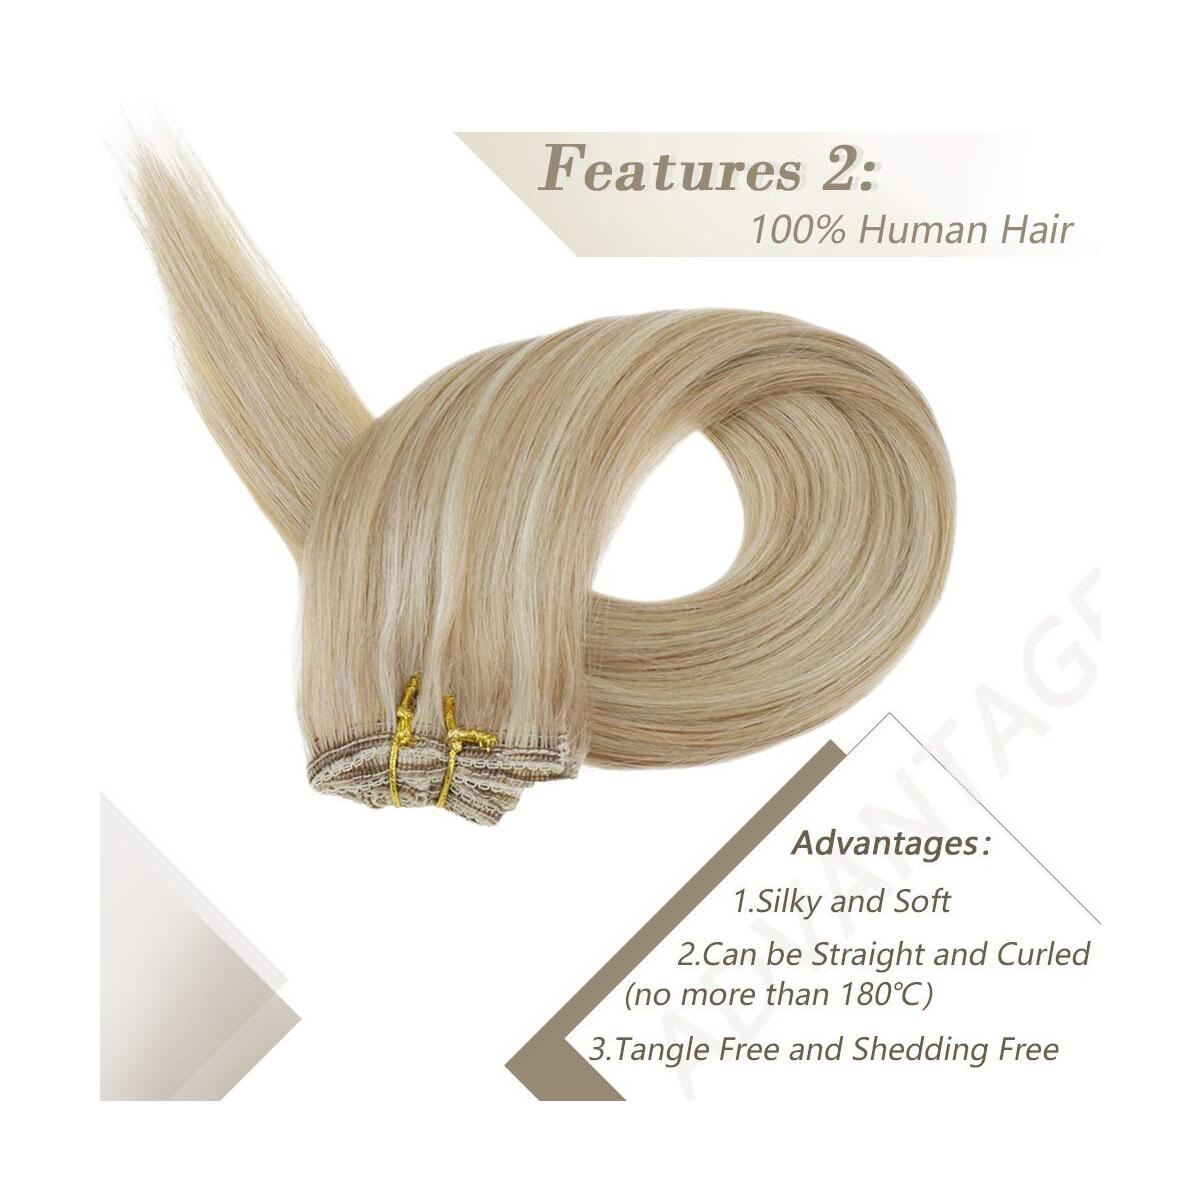 RUNATURE Clip in Hair Extensions 10 Inches Color 12P60 Dirty Blonde Highlighted Platinum Blonde 50g 3 Pieces Human Hair Clip in Extensions